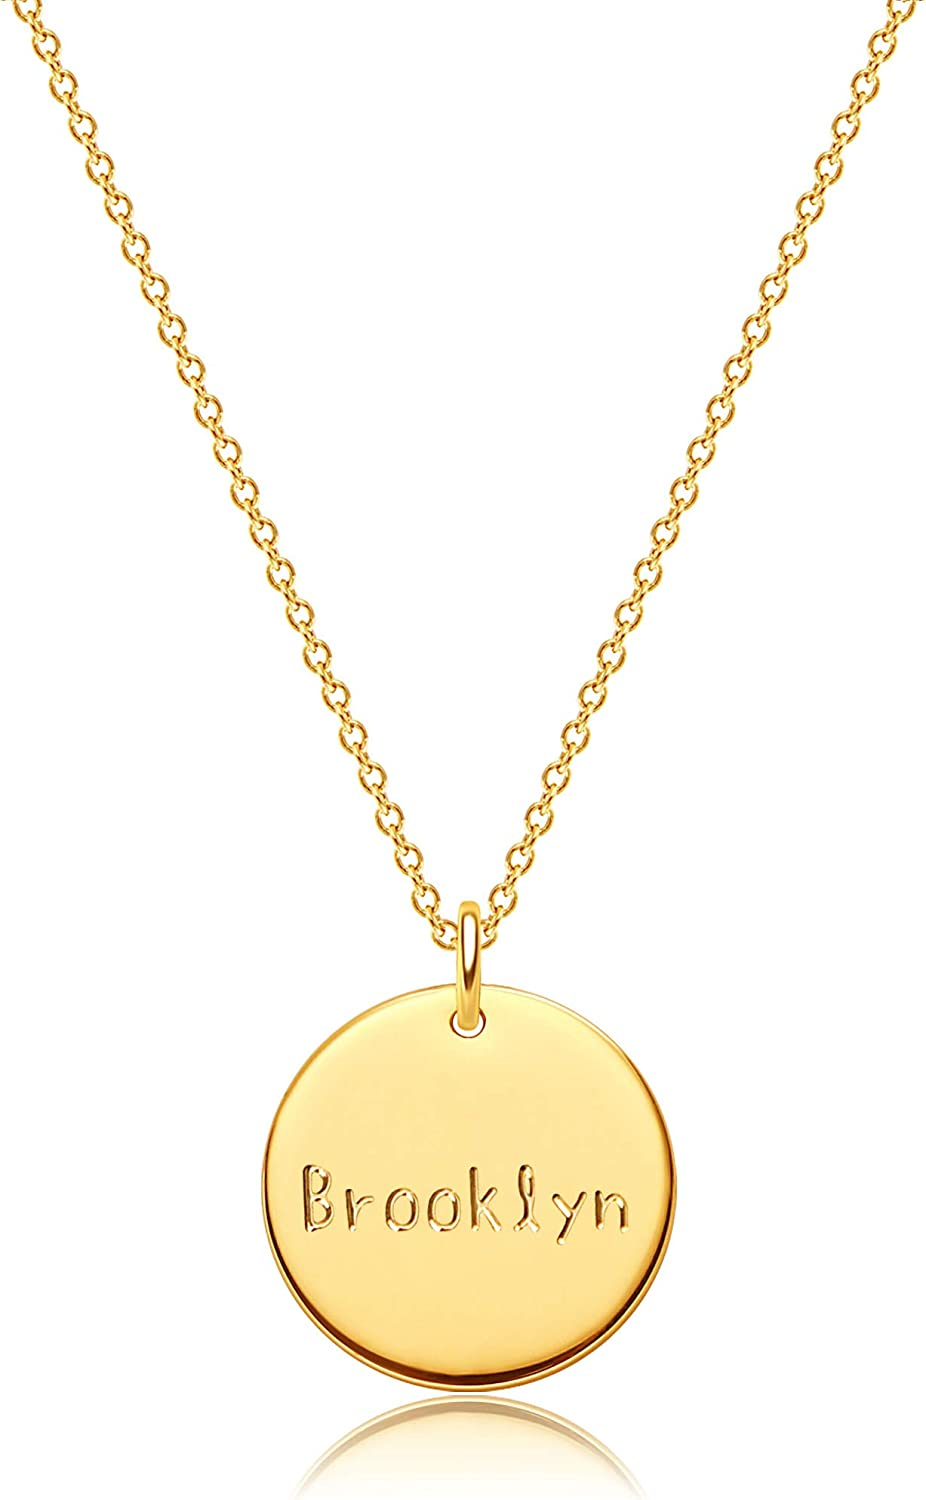 DREMMY STUDIOS Personalized Name Disc Manufacturer regenerated product 18K C Selling Gold Necklace Filled